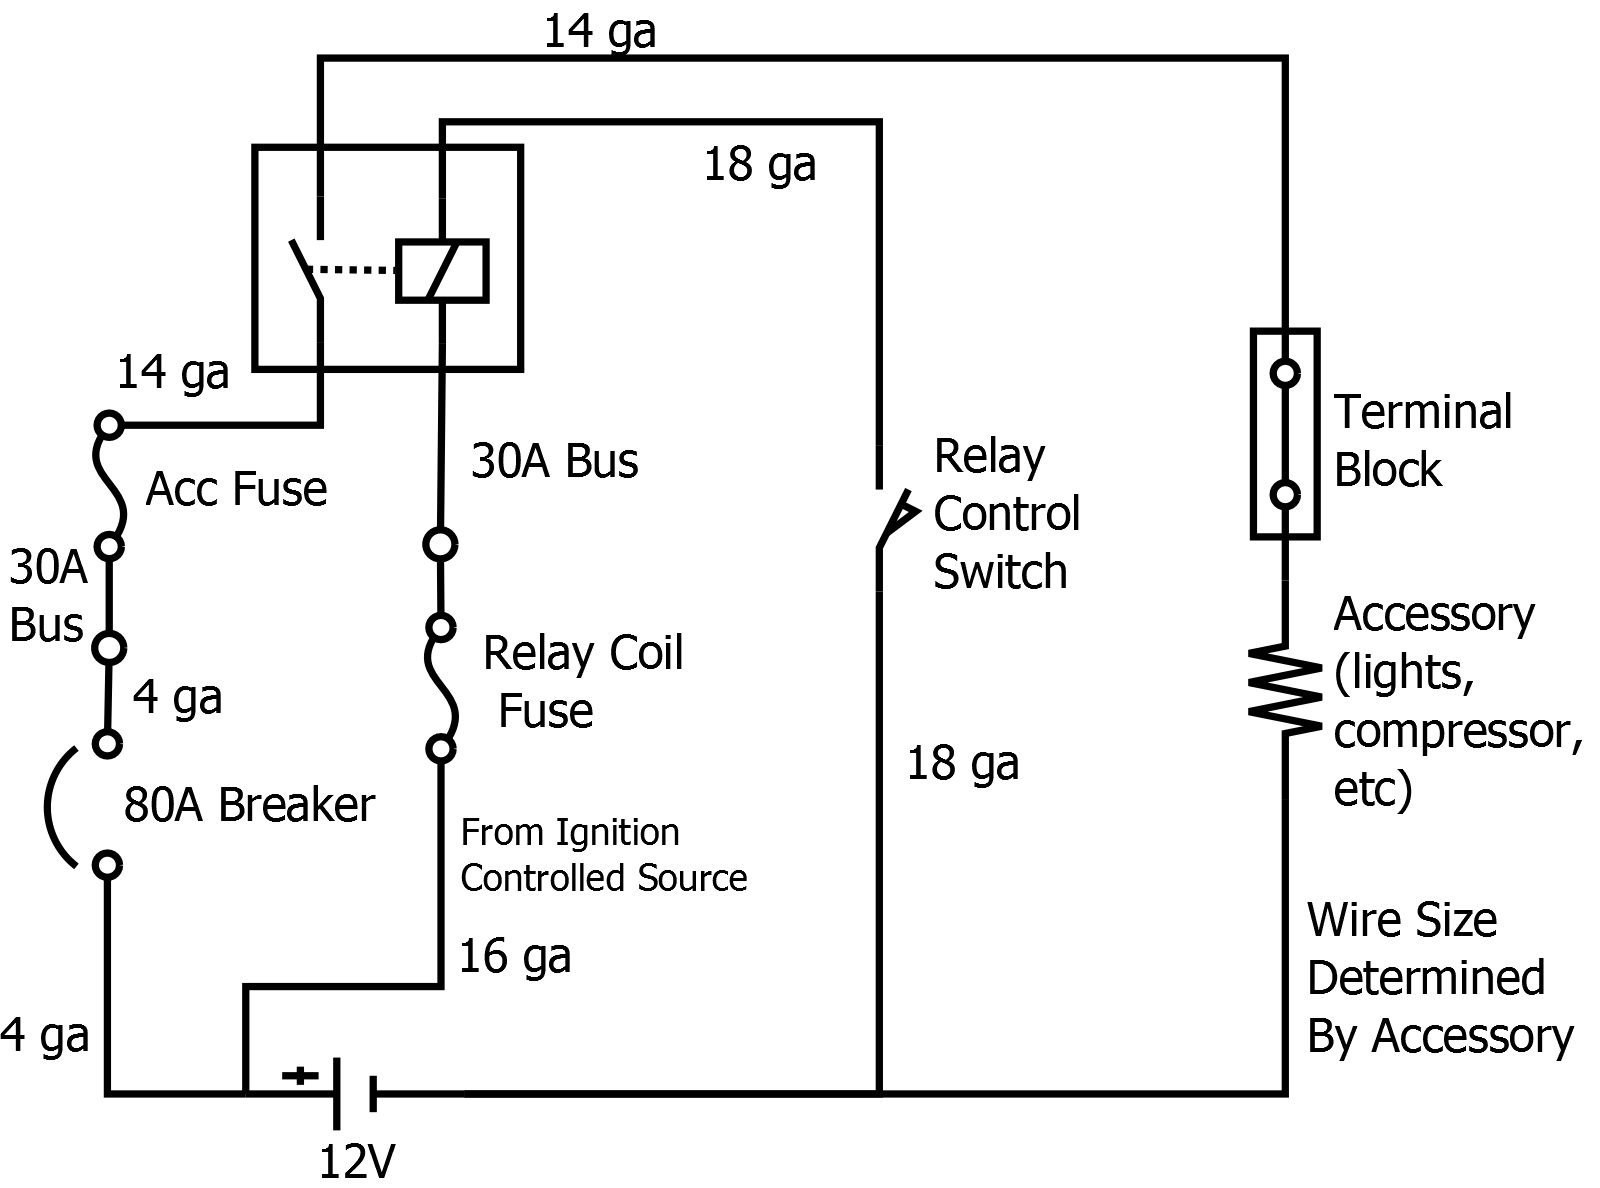 Basic 12v Wiring Diagram Fuse Block Library Relay Circuit Custom And Box For Accessories Spod Knockoff Jeepforumcom